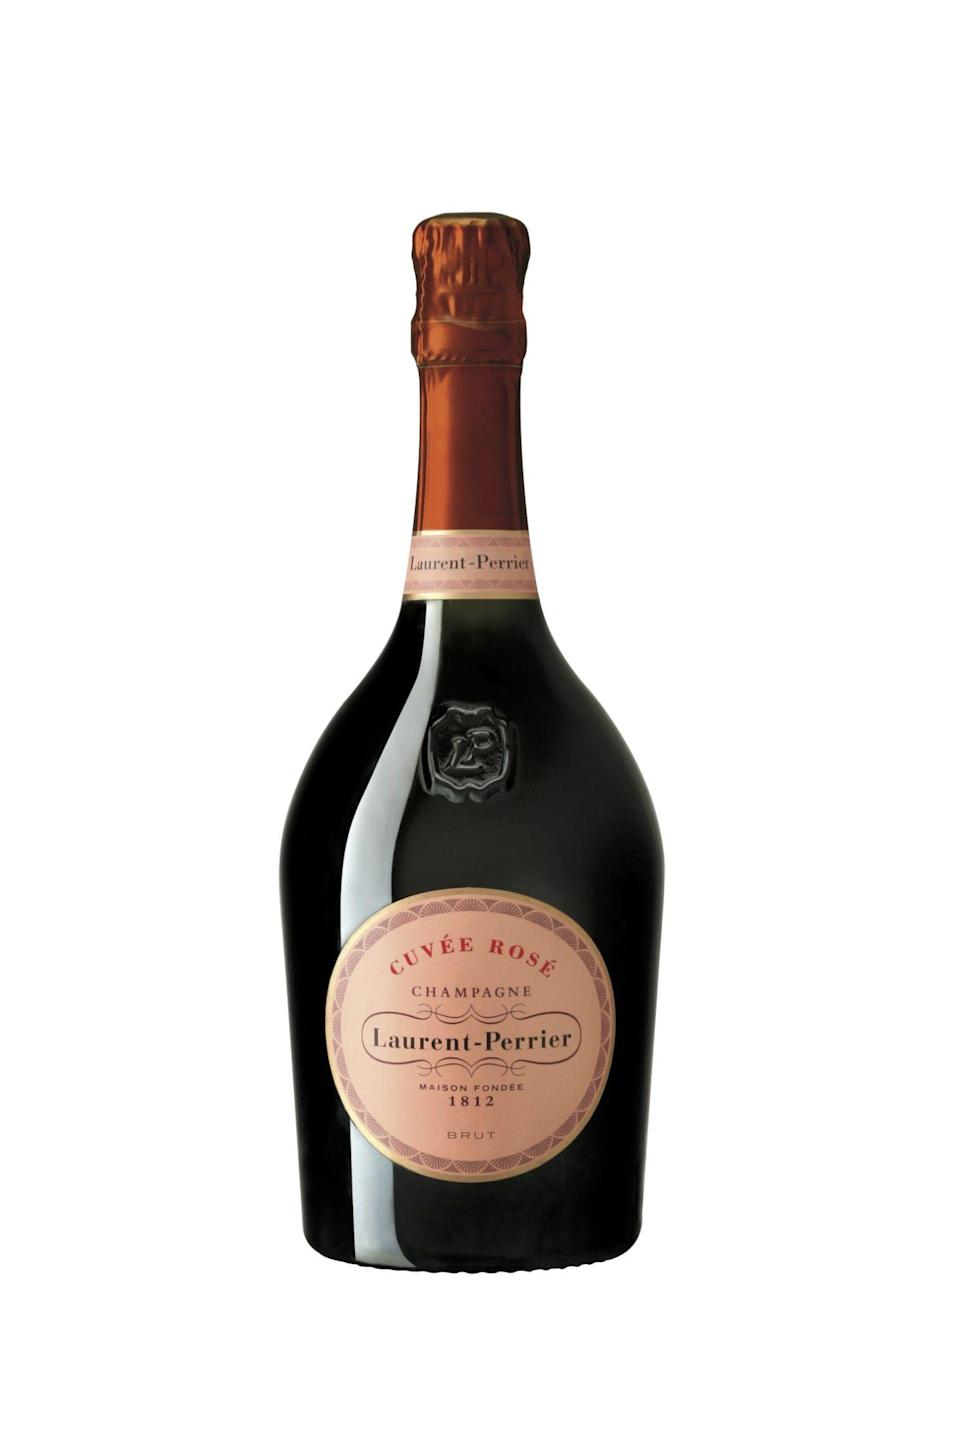 """<p><strong>Laurent-Perrier</strong></p><p>wine.com</p><p><strong>$79.99</strong></p><p><a href=""""https://go.redirectingat.com?id=74968X1596630&url=http%3A%2F%2Fwww.wine.com%2Fv6%2FLaurent-Perrier-Brut-Rose%2Fwine%2F10521%2FDetail.aspx&sref=https%3A%2F%2Fwww.veranda.com%2Fluxury-lifestyle%2Fentertaining%2Fg36465407%2Frose-champagne-bottles%2F"""" rel=""""nofollow noopener"""" target=""""_blank"""" data-ylk=""""slk:Shop Now"""" class=""""link rapid-noclick-resp"""">Shop Now</a></p><p>This gorgeous bottle speaks for itself, but just wait until you taste what's inside. One will discover intensely fruity flavors and a welcome sharpness, bringing you back to summer days spent picking fresh summer berries. </p>"""